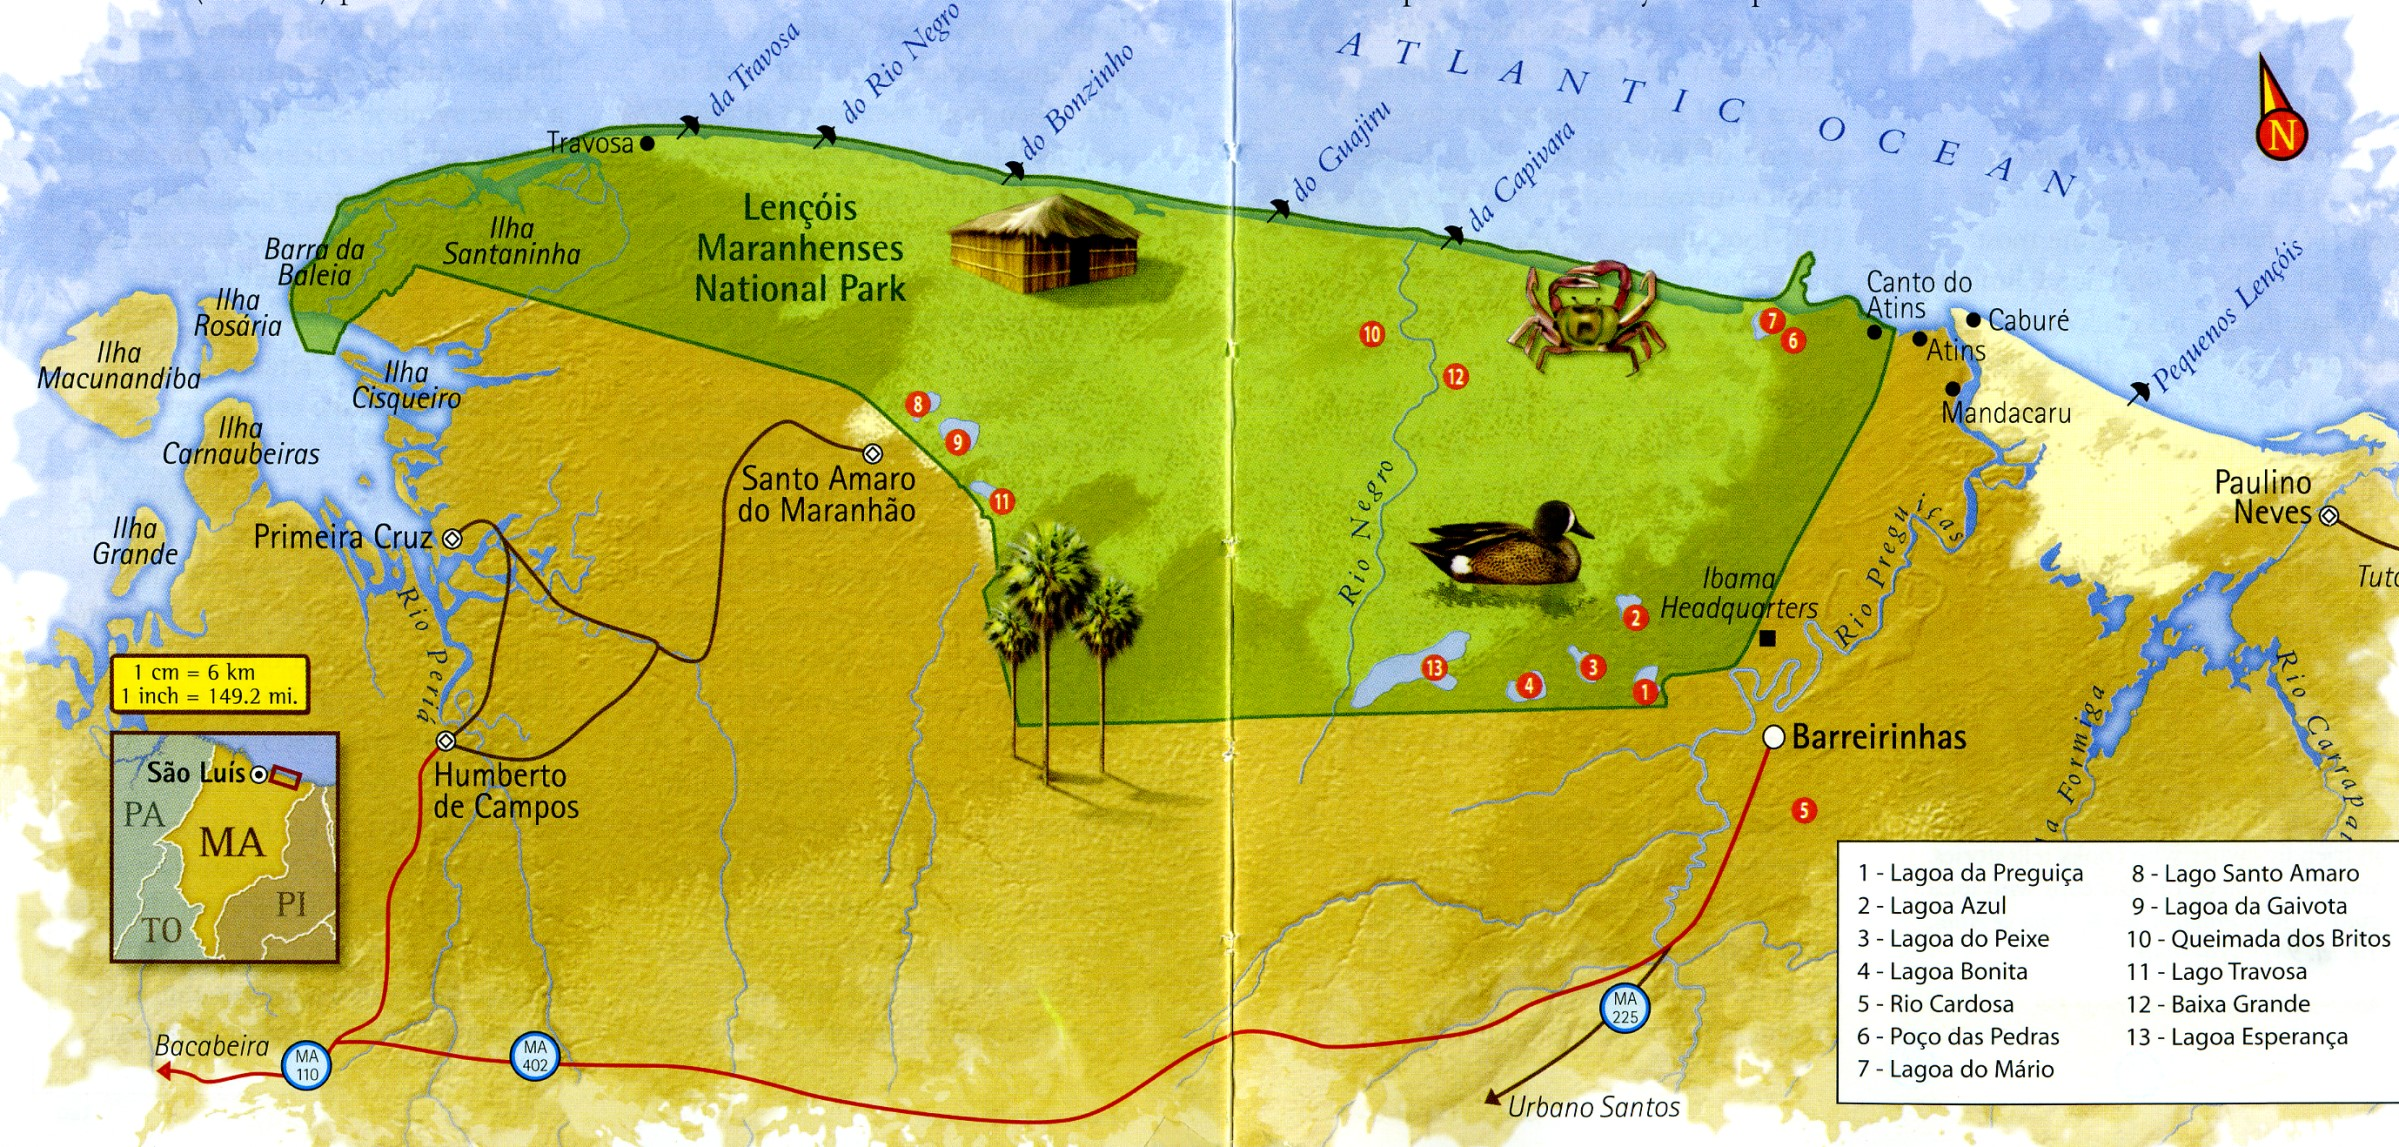 Map of Lencois Maranhenses Maranhao